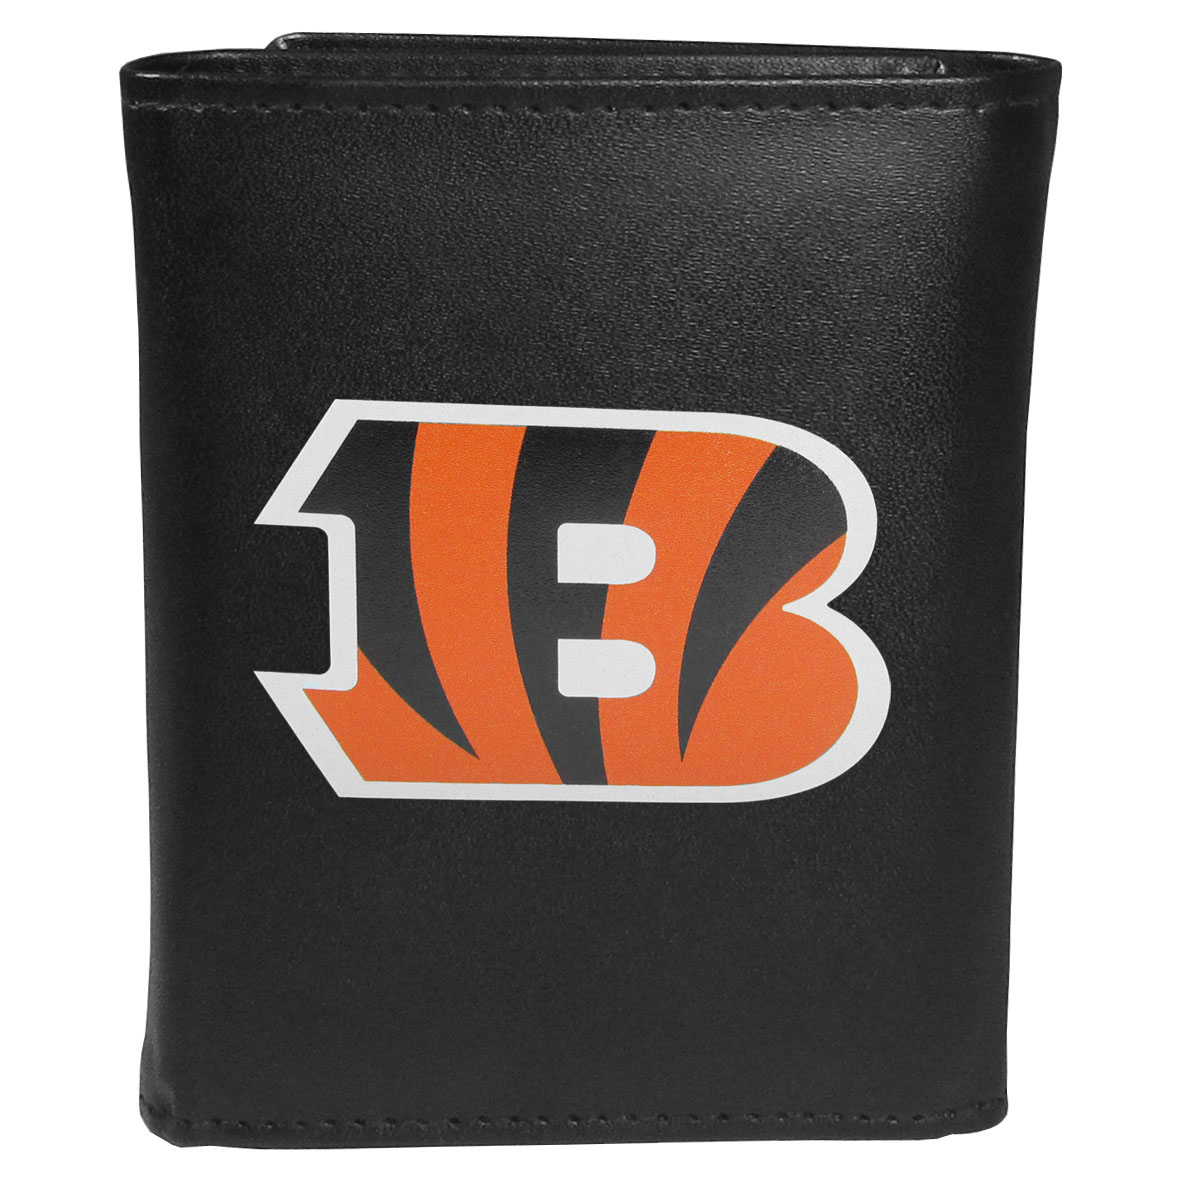 Cincinnati Bengals Tri-fold Wallet Large Logo - Sports fans do not have to sacrifice style with this classic tri-fold wallet that sports theCincinnati Bengals?extra large logo. This men's fashion accessory has a leather grain look and expert craftmanship for a quality wallet at a great price. The wallet features inner credit card slots, windowed ID slot and a large billfold pocket. The front of the wallet features an extra large printed team logo.